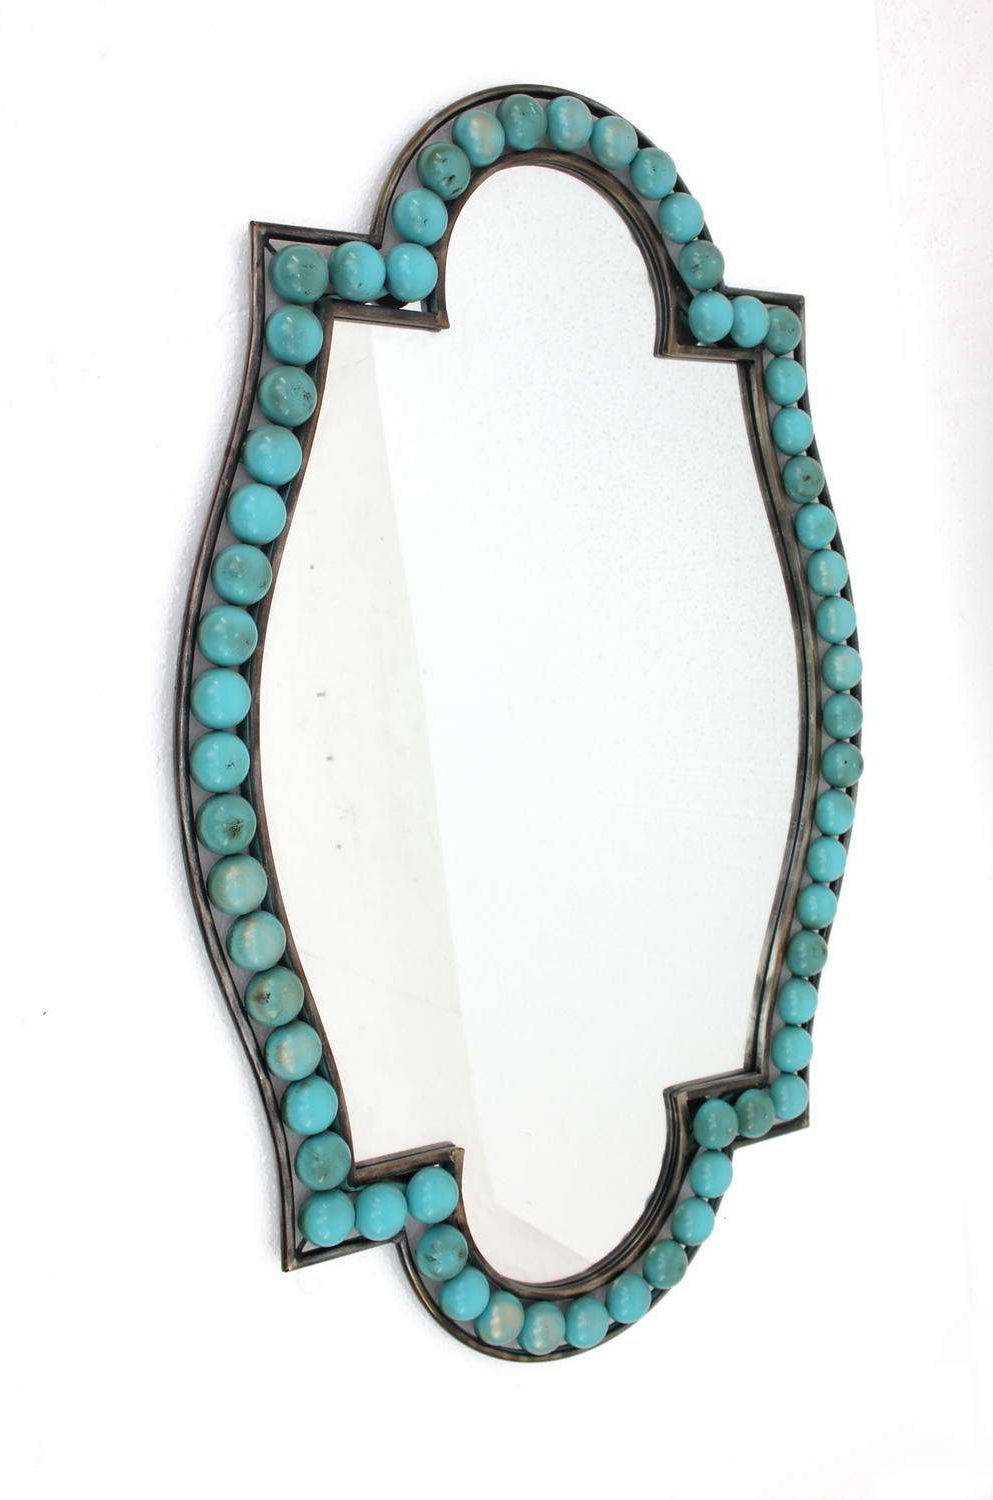 Most Recent Teton Home Wd 144 With Regard To Turquoise Wall Mirrors (View 7 of 20)